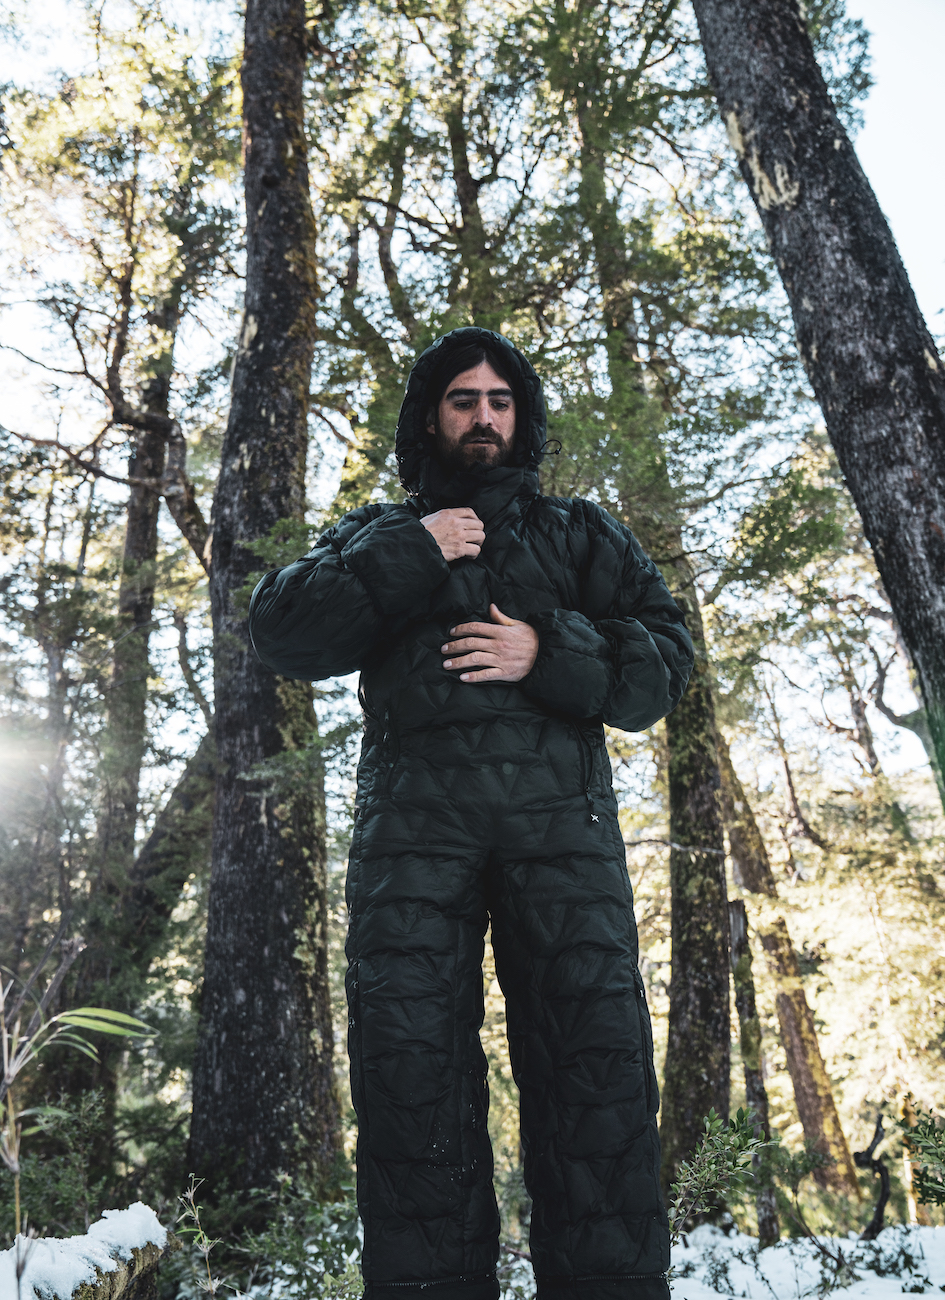 "<p>The first fully recycled, wearable sleeping bag is built for freedom of movement so that you can experience the outdoors in cozy warmth and comfort. Selk'bag's Nomad Wearable Sleeping Bag is made with 100 percent post-consumer recycled material, and each one is produced with recycled polyester material that utilizes 65 discarded plastic bottles to create each bag. /{&nbsp;}<a  href=""https://www.selkbagusa.com/"" target=""_blank"" title=""https://www.selkbagusa.com/"">Website{&nbsp;}</a>/ Price: $249 / Image courtesy of Selk'bag // Published: 12.6.20</p>"